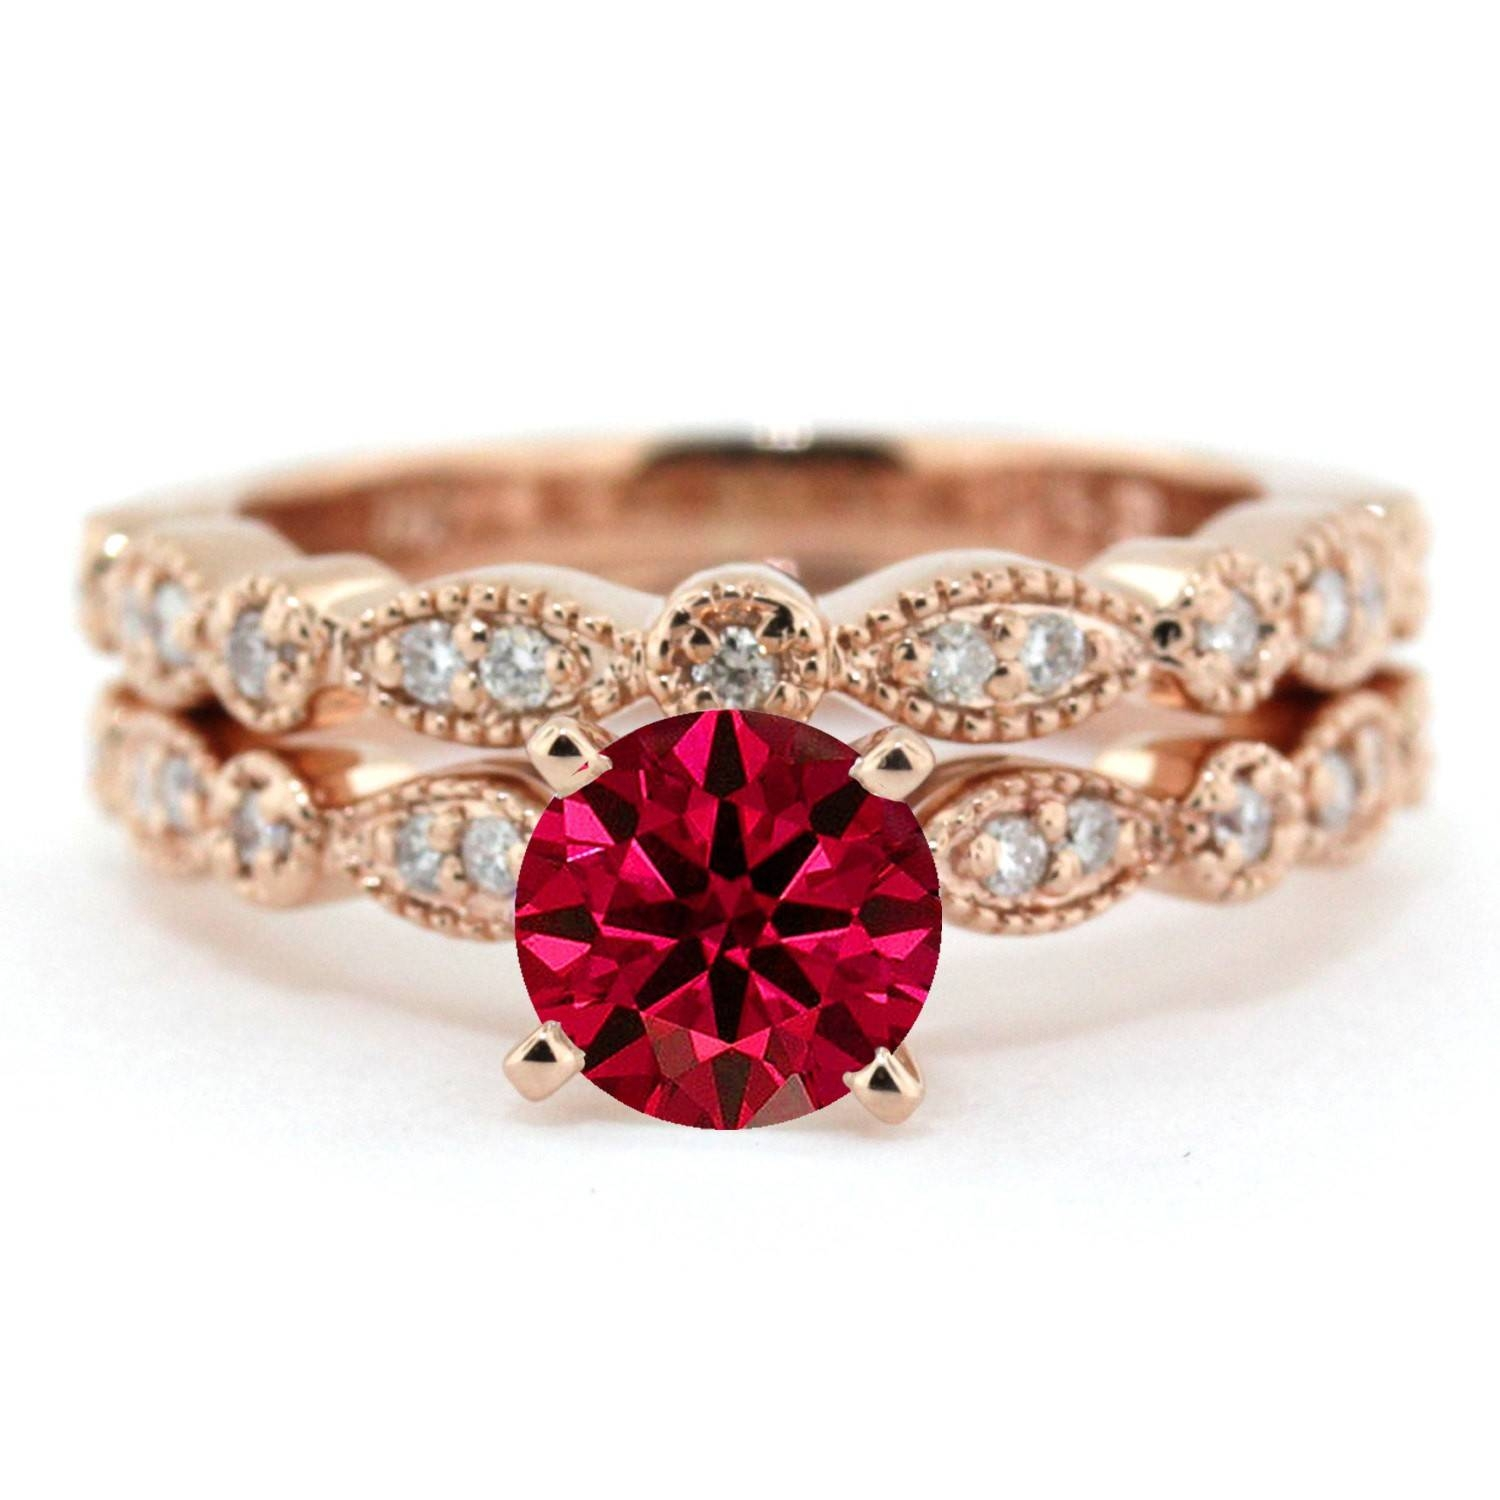 Ruby Rings | Ruby Engagement Rings | Ruby Diamond Rings In Gold And Ruby Engagement Rings (View 13 of 15)